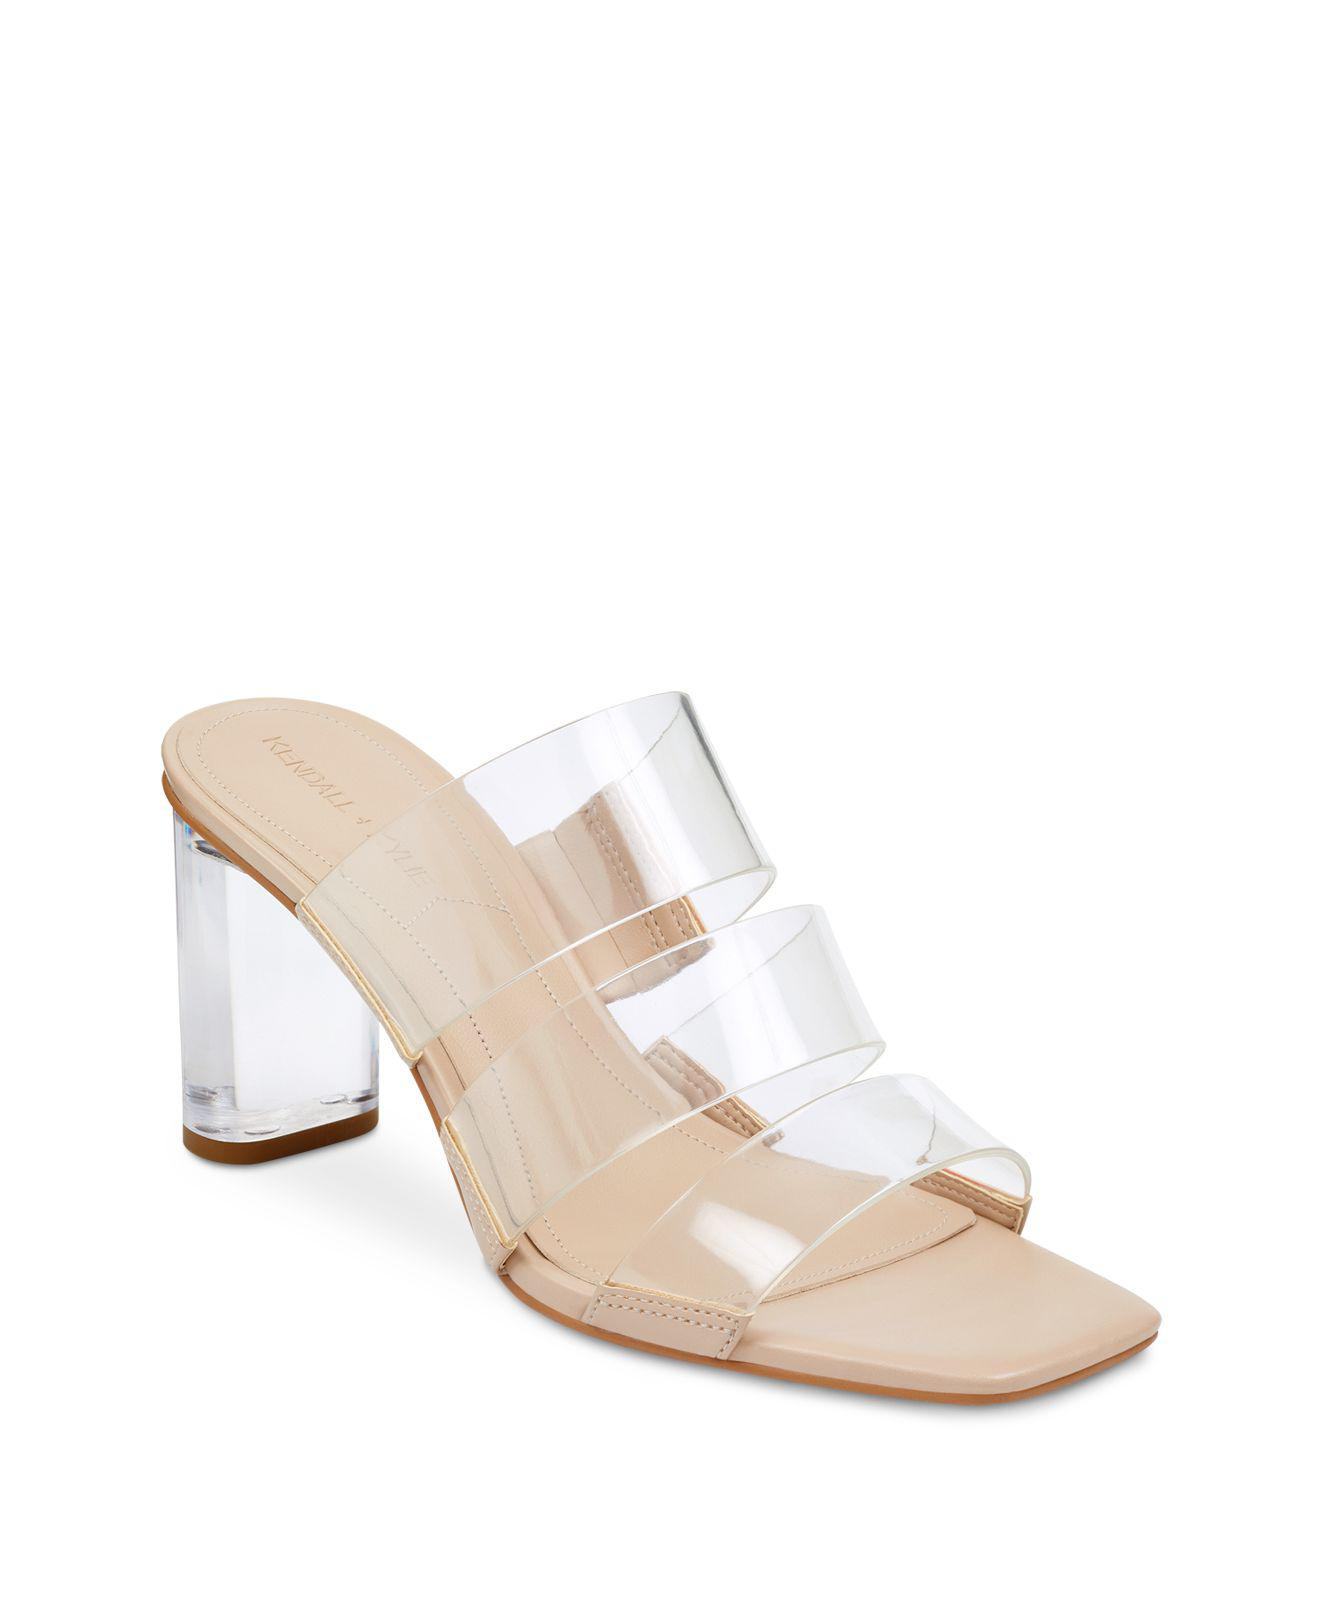 Kendall And Kylie Women's Leila2 Lucite Block Heel Sandals SB3BAd